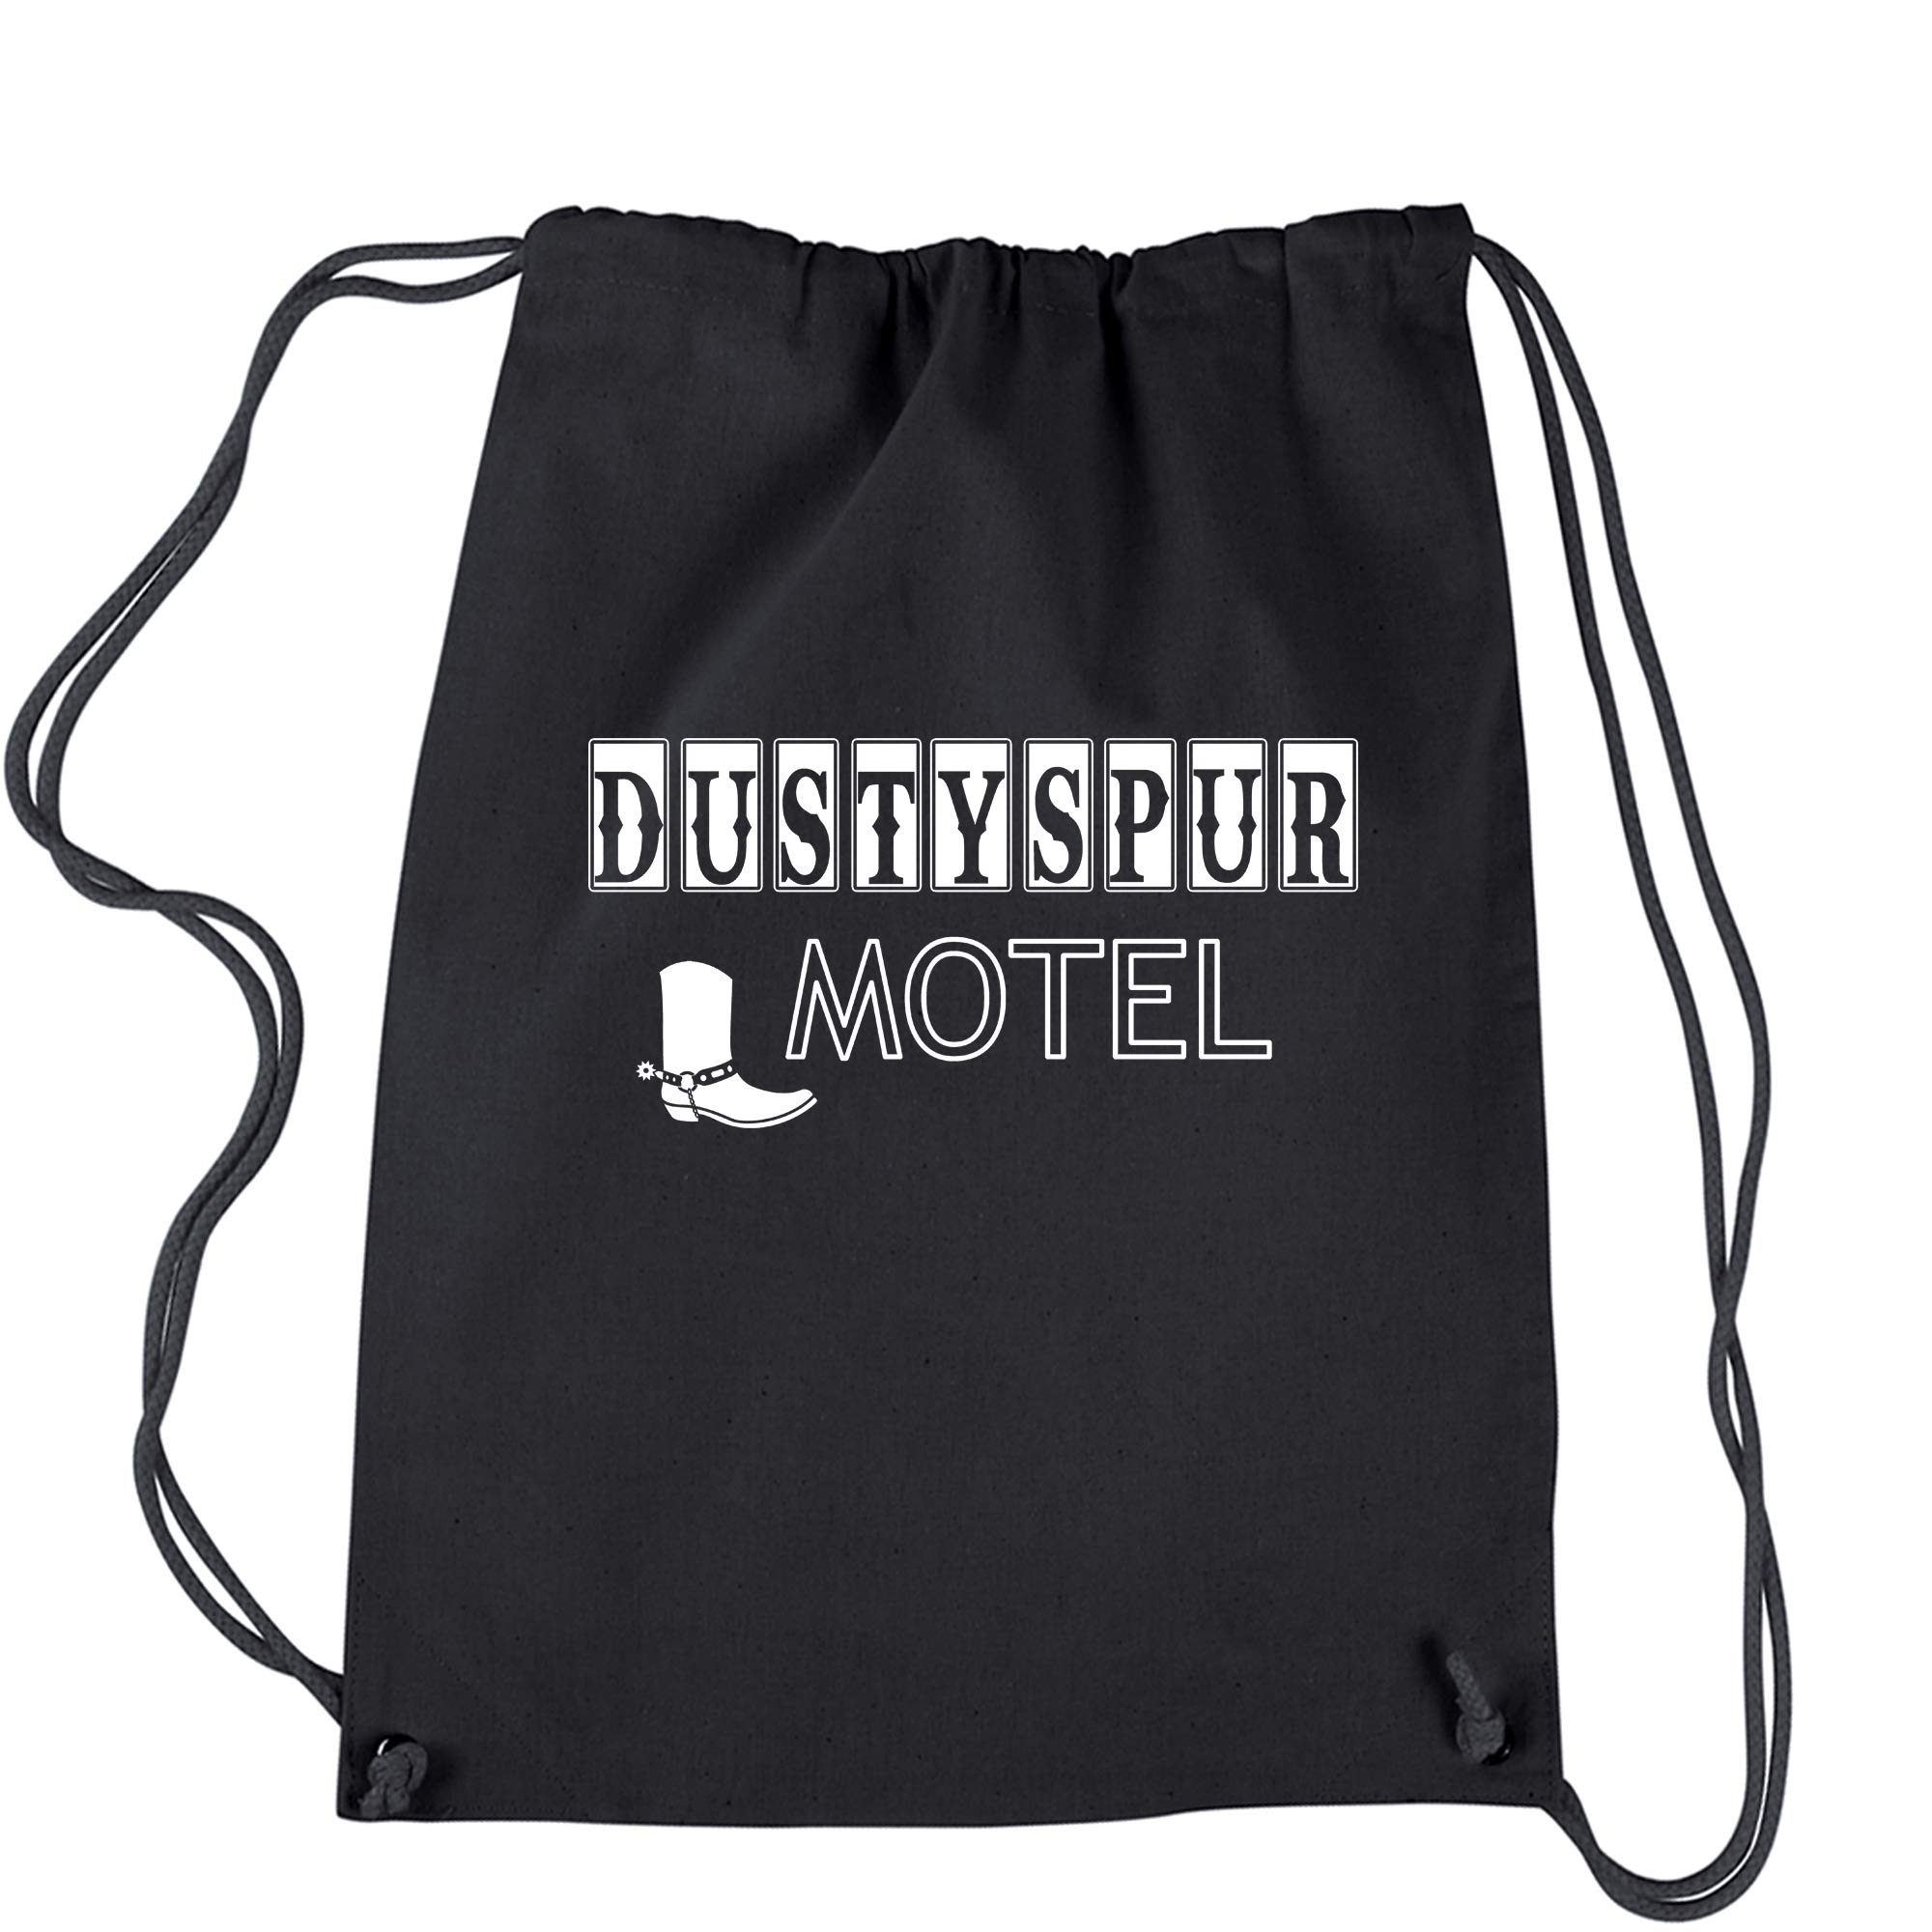 Backpack Dusty Spur Motel Womens Wrestling Black Drawstring Backpack